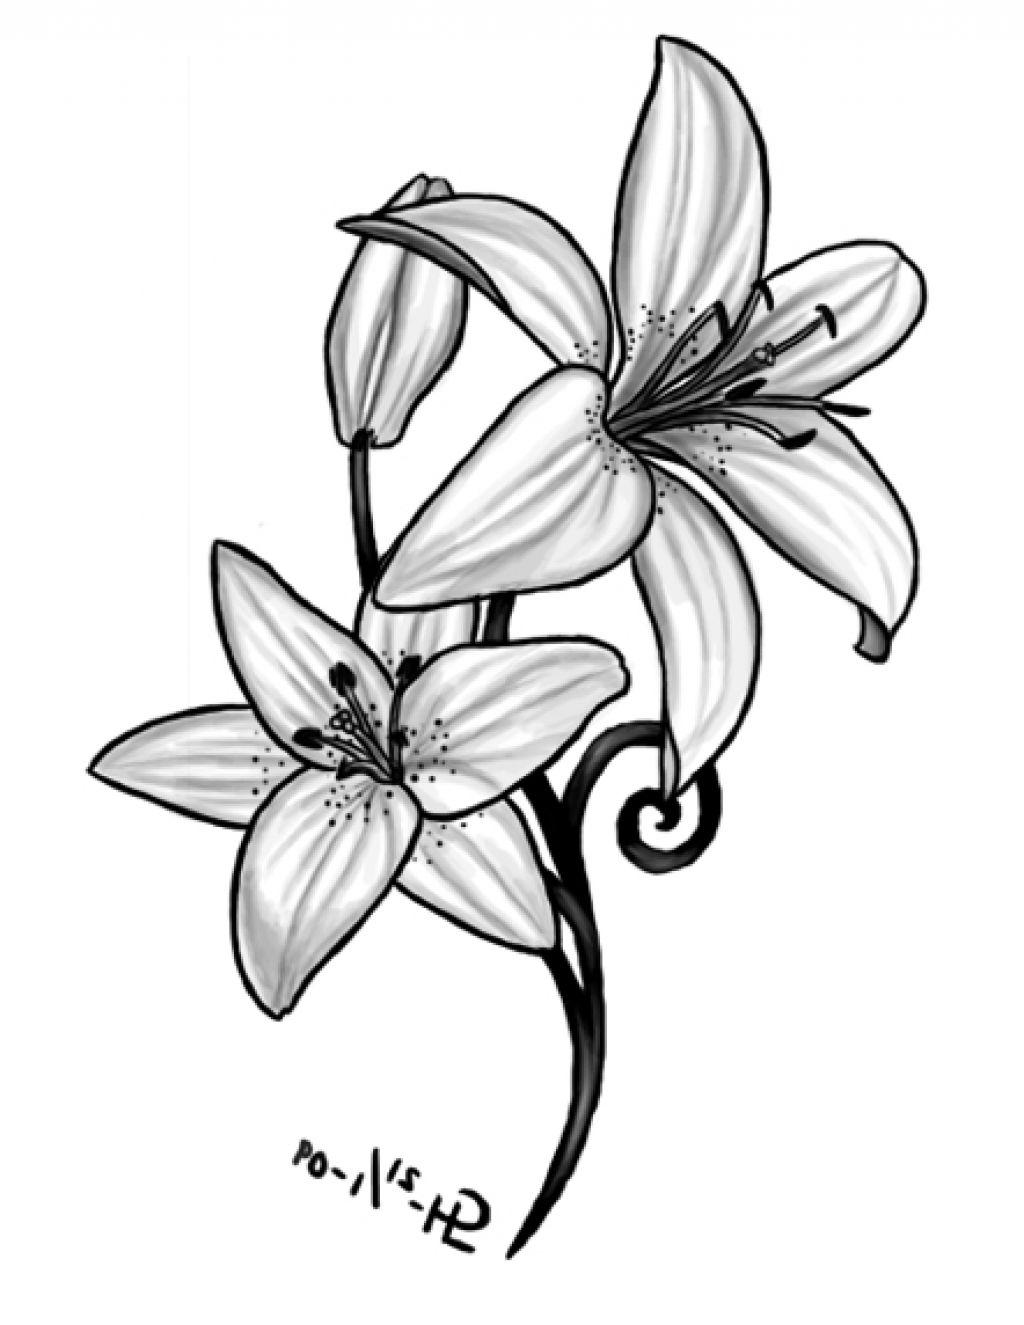 lily flower drawing lily flower drawing illustration black white line art drawing lily flower